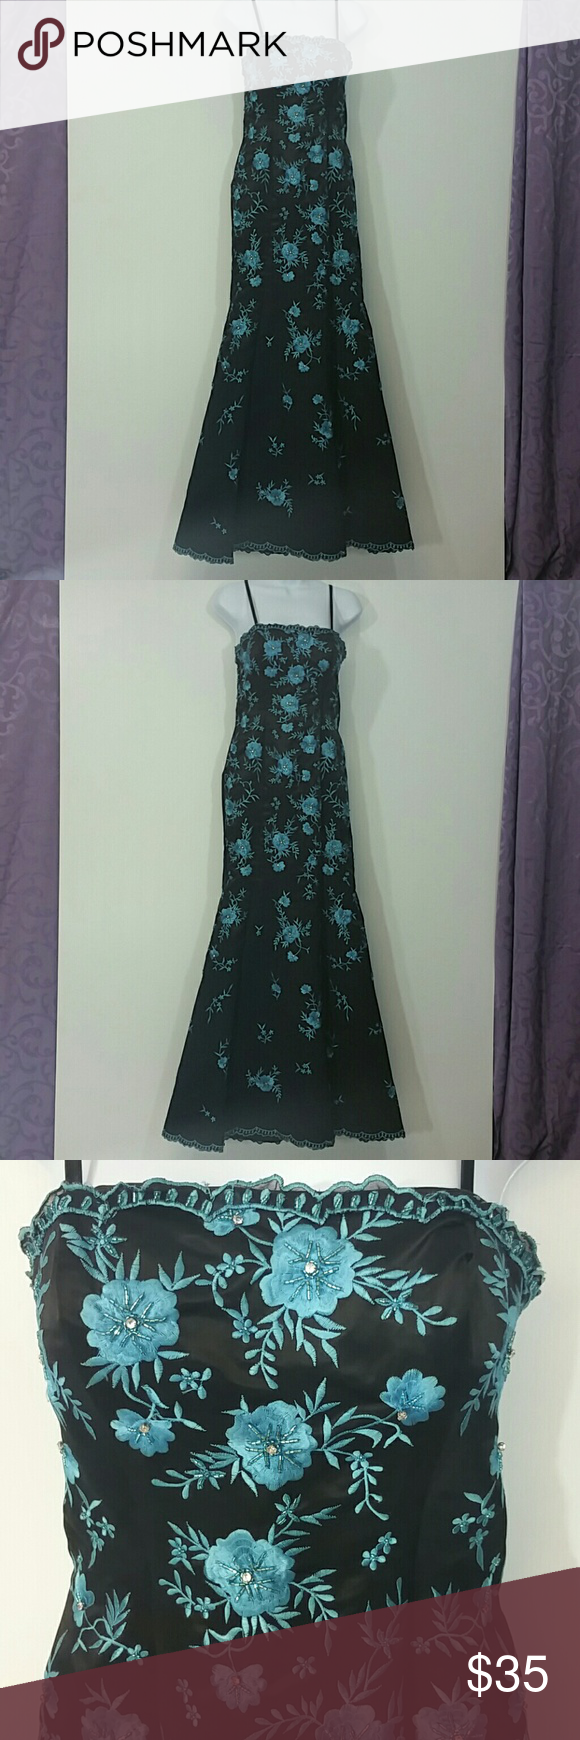 Turquoise/Black Floral/crystal bead Mermaid Dress This Dress is beautiful and glamorous! It has a very forgiving frame that is enhanced with crystal beaded turquoise embroider Flowers. It measures 58 inches from shoulder to hem. This would look amazing at prom or school dance!:) L' Pogue  Dresses Prom